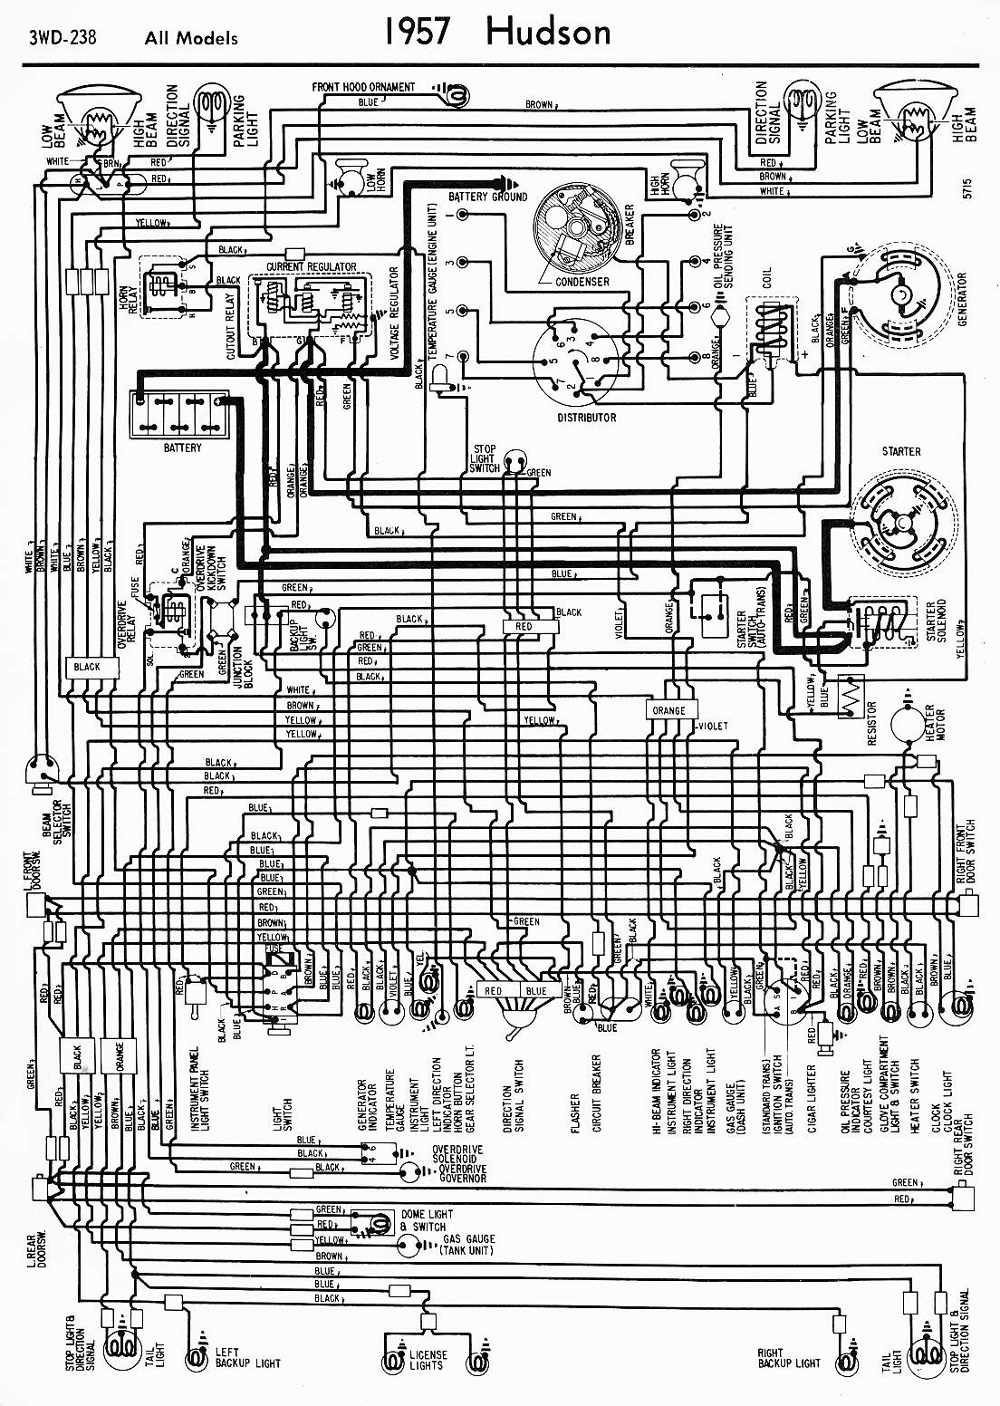 Nascar Wiring Diagram Electrical Schematics Funny 1951 Hudson Hornet Product Diagrams U2022 48 Race Car Coloring Pages